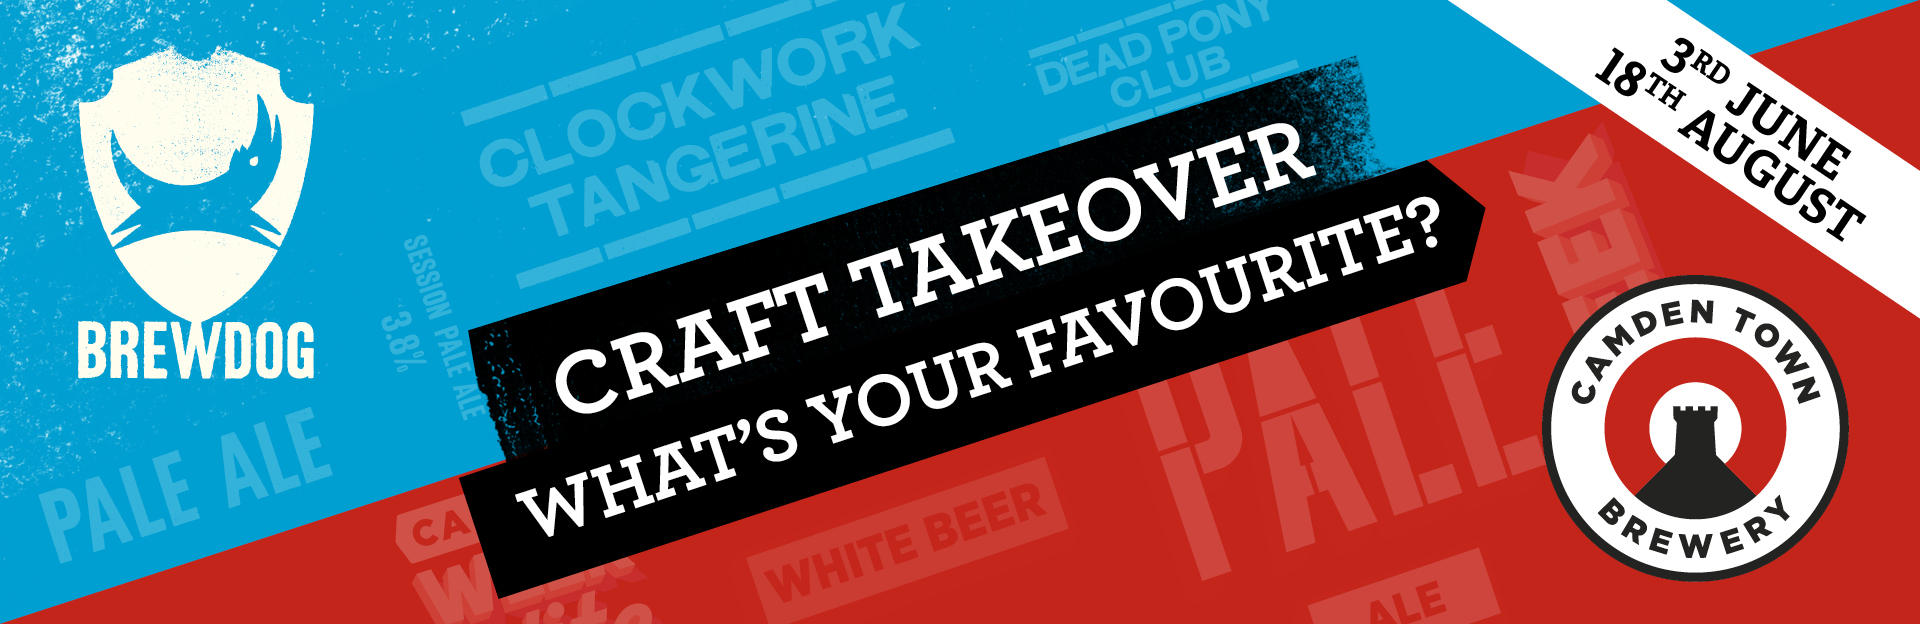 Craft Takeover at The Tron